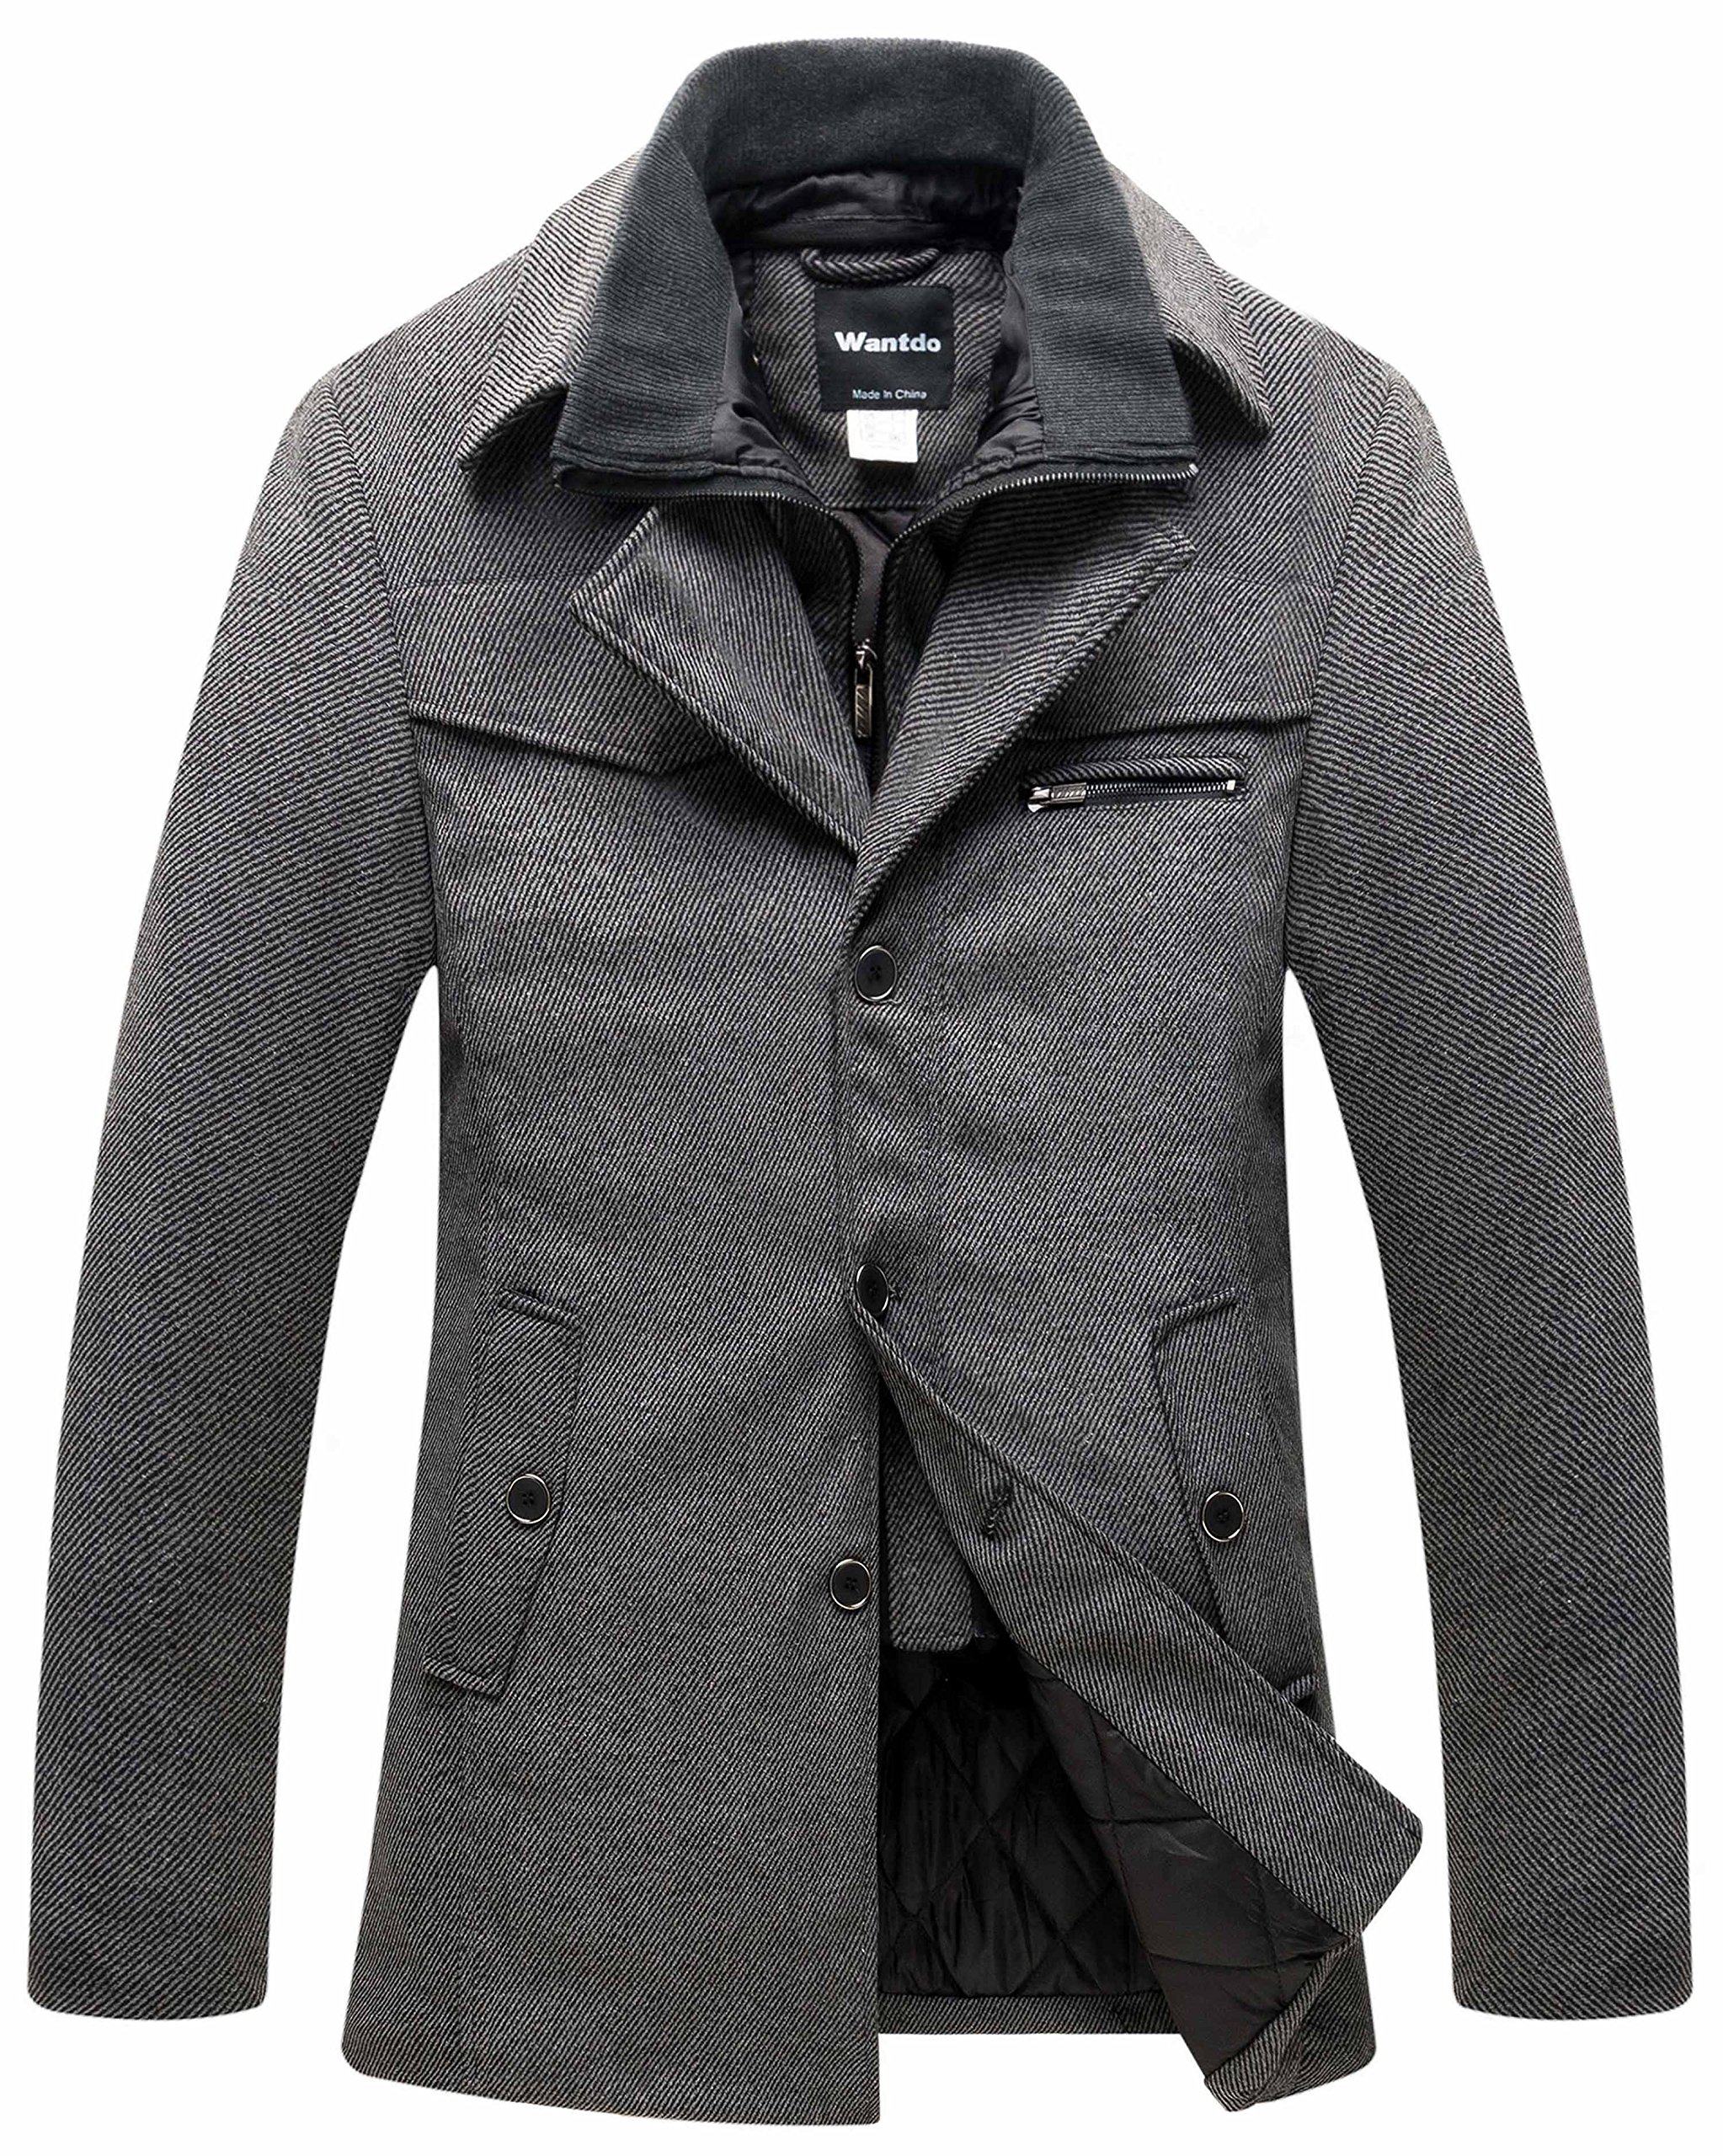 Wantdo Men's Wool Pea Coat Windproof Thick Winter Jacket with Quilted Bib US Large Grey